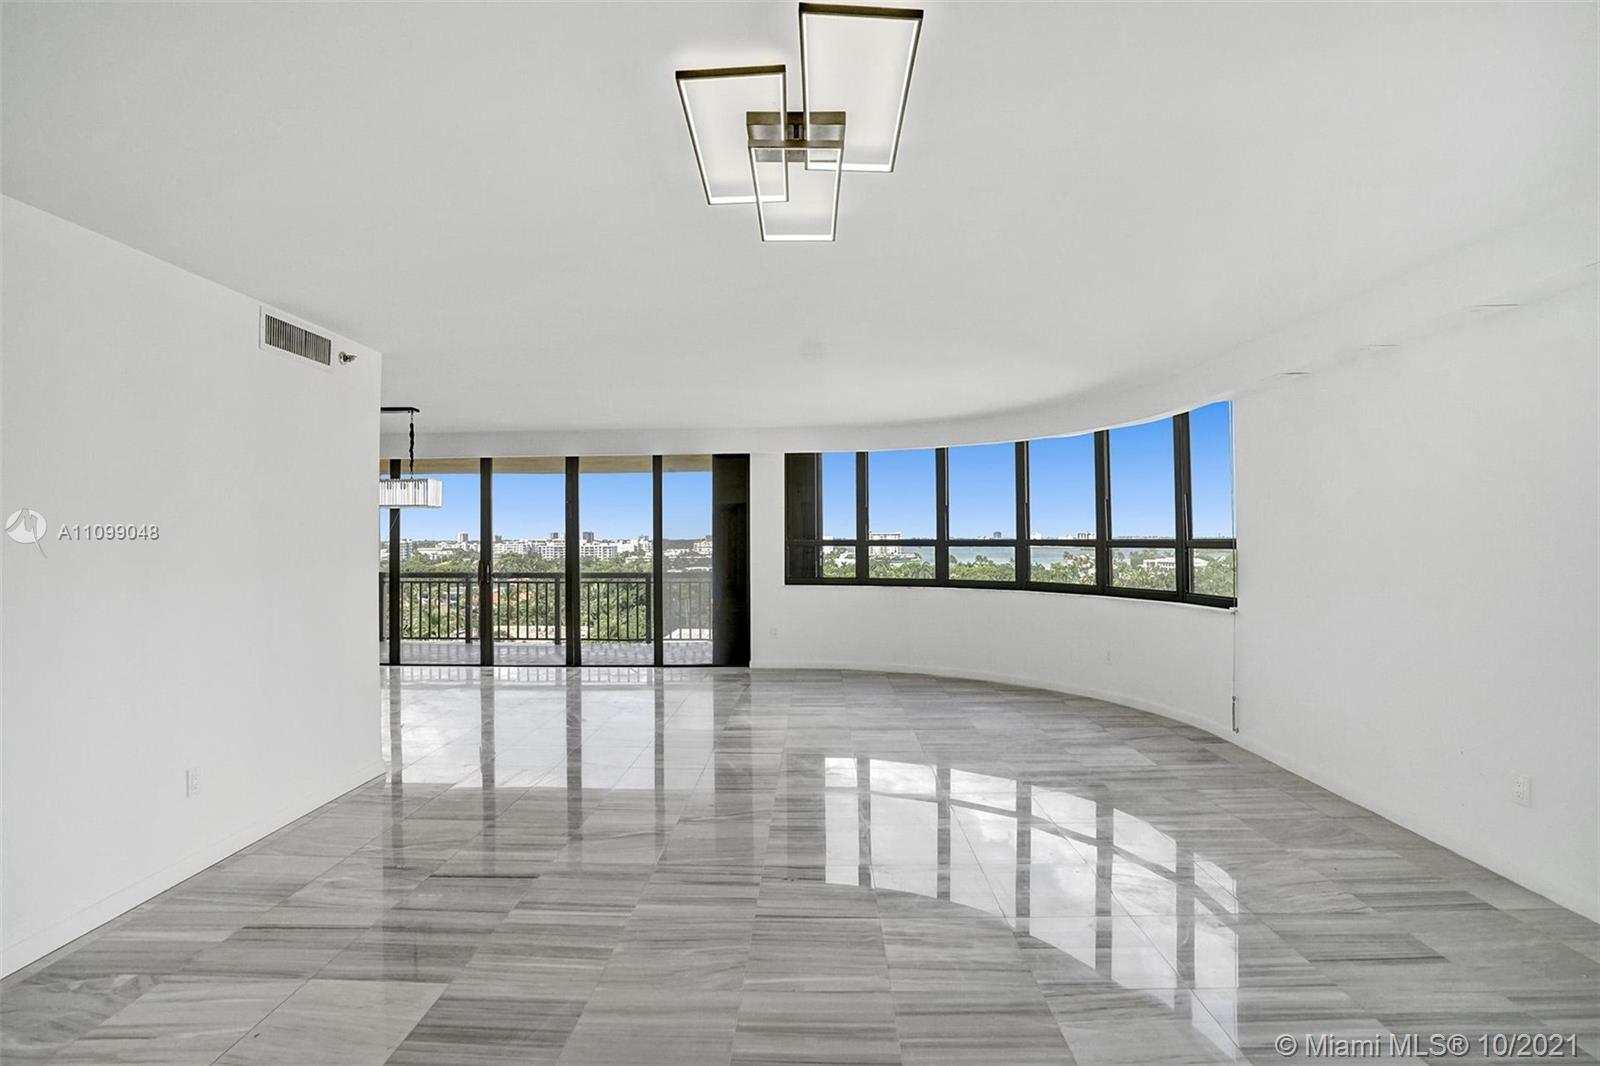 Stunning skyline views will greet you as you walk into this beautiful condo. Buffed and painted unit includes a facelifted kitchen, new appliances, and a third bedroom added. You can't go wrong, and you'll be ready for whatever life hands you. The Tiffany of Bal Harbour is a prestigious and elegant building offering many amenities. Aside from being oceanfront, you have a restaurant, billiards room, movie room, beachfront and pool services, fitness center, sauna, steam room & spa, and so much more. Steps from the famous and fabulous Bal Harbour shops, Harding Avenue, and of course with a boardwalk behind the building, will leave you with plenty to do on any given day. Showings are only on weekdays either at 10:30 AM or 2:30 PM.